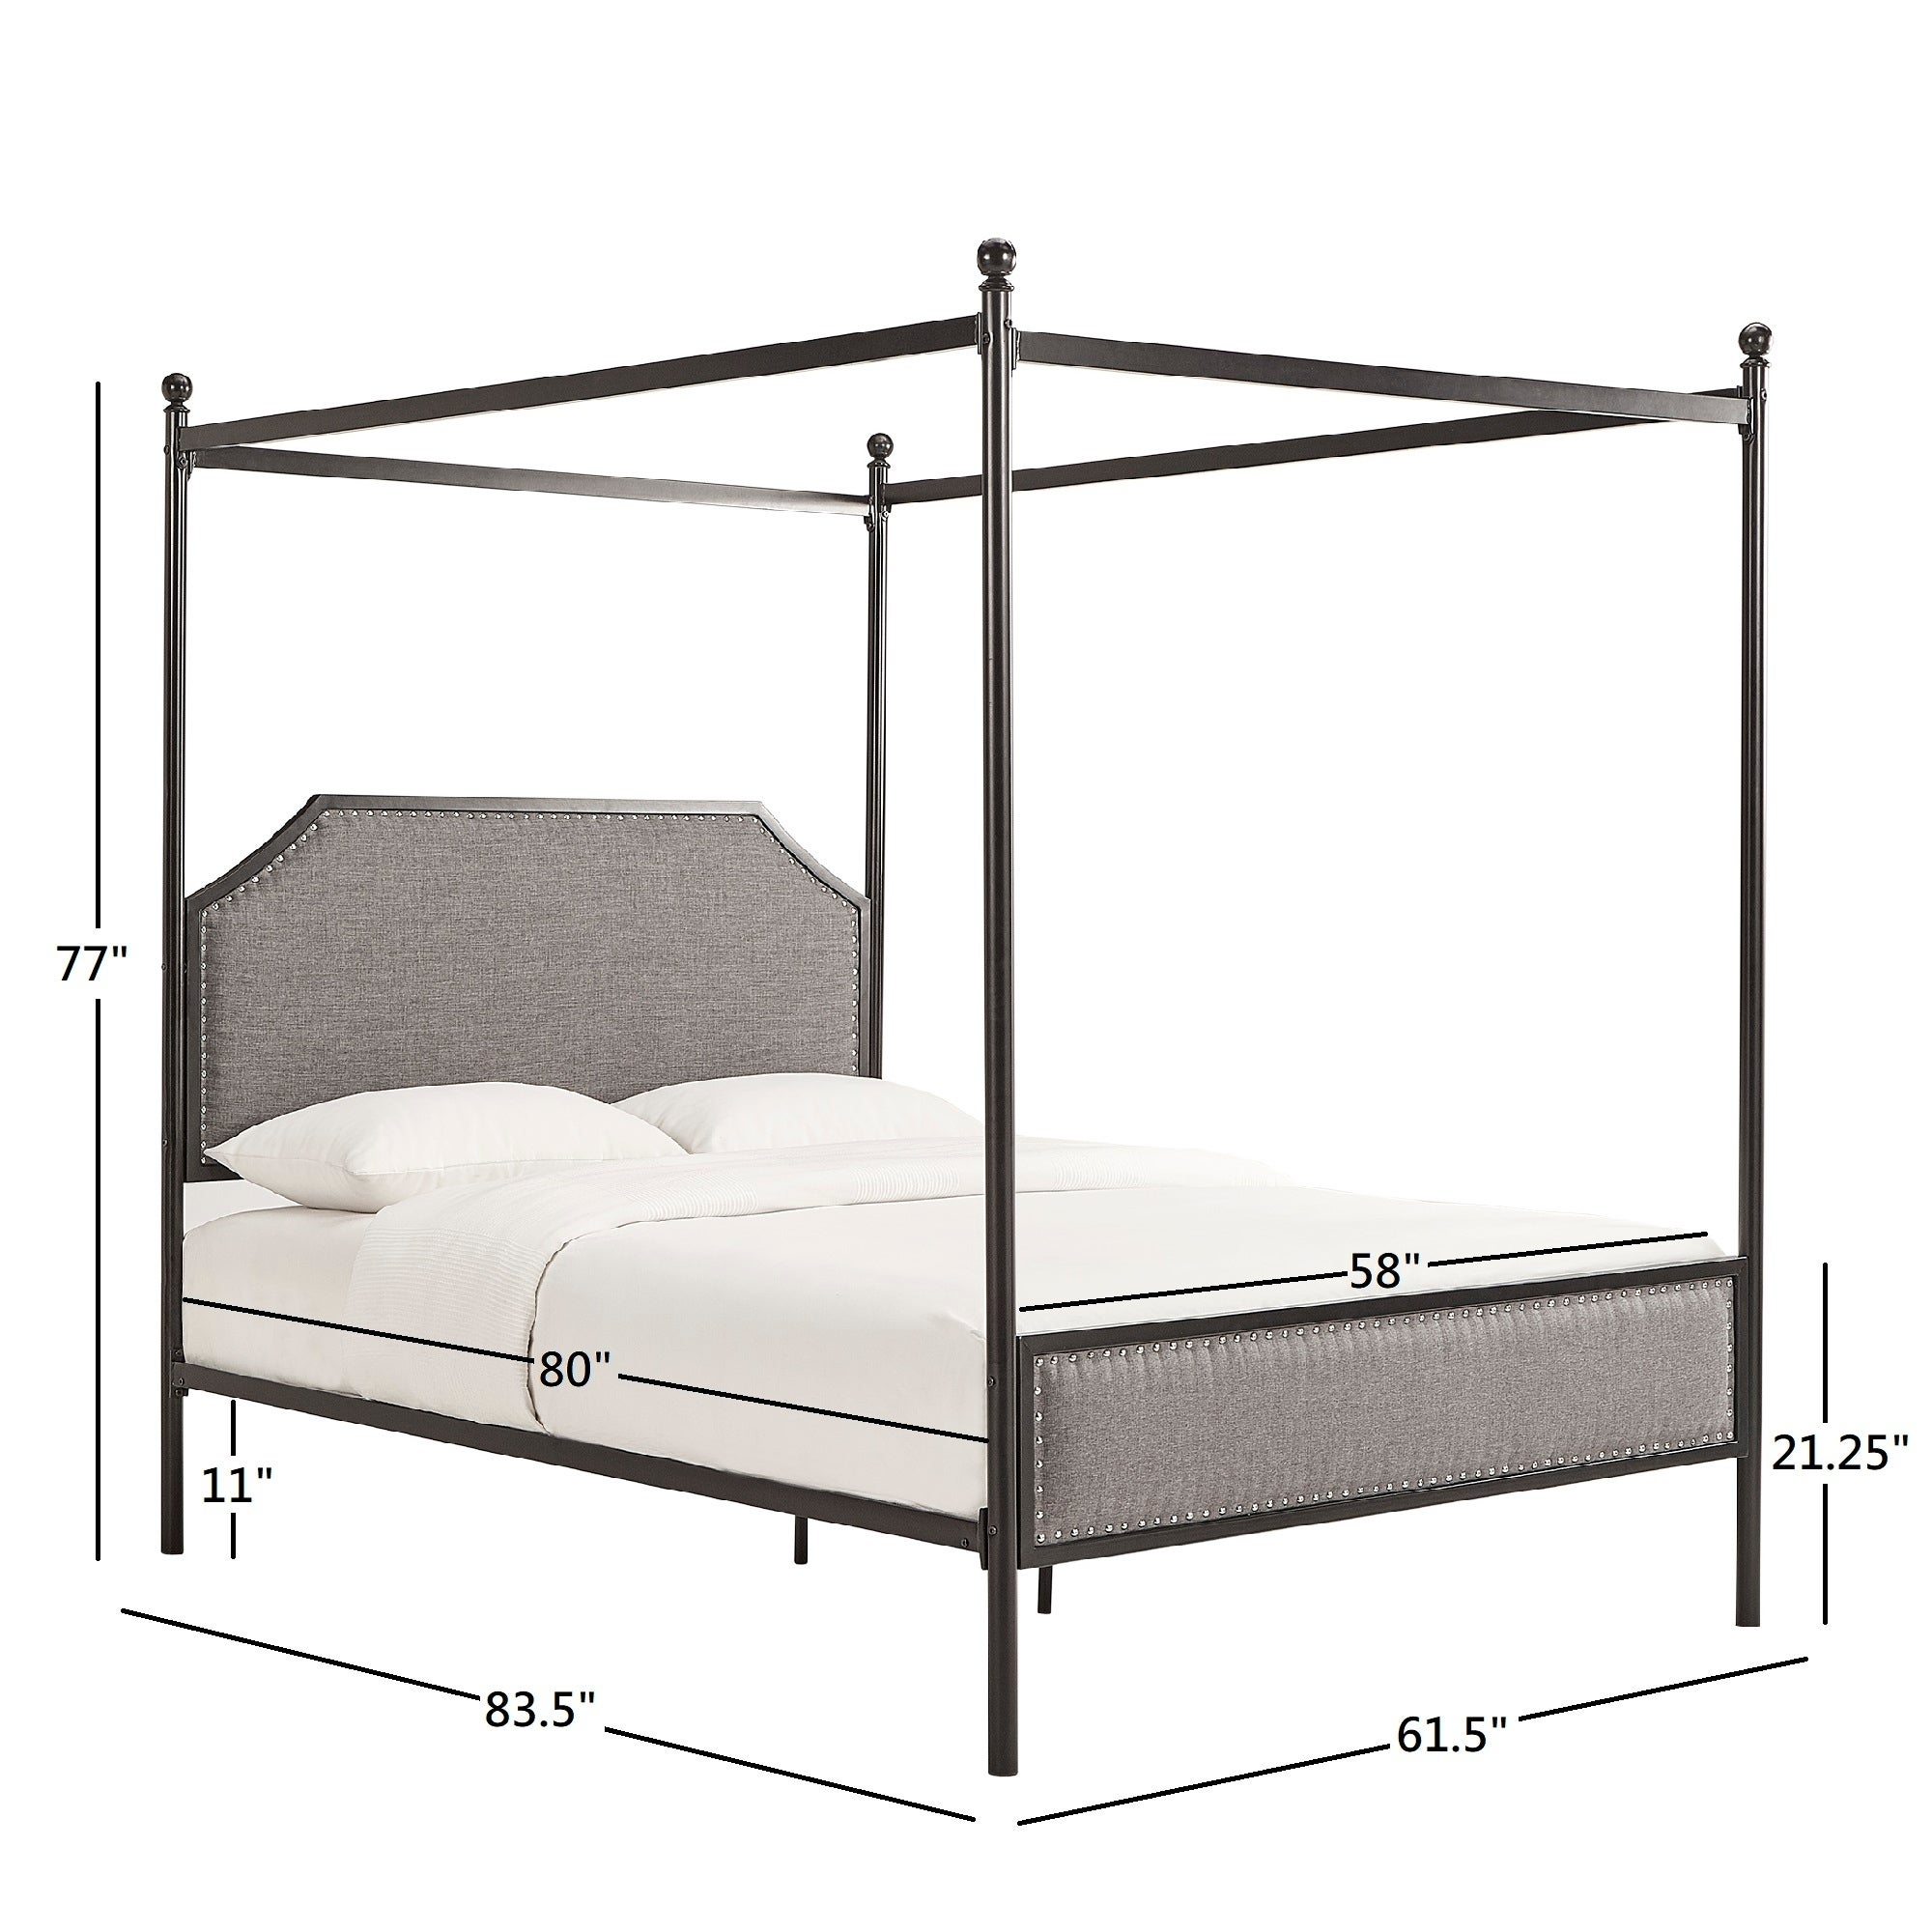 Rayen Grey Upholstered Metal Canopy Queen Bed By Inspire Q Clic On Free Shipping Today 27890304